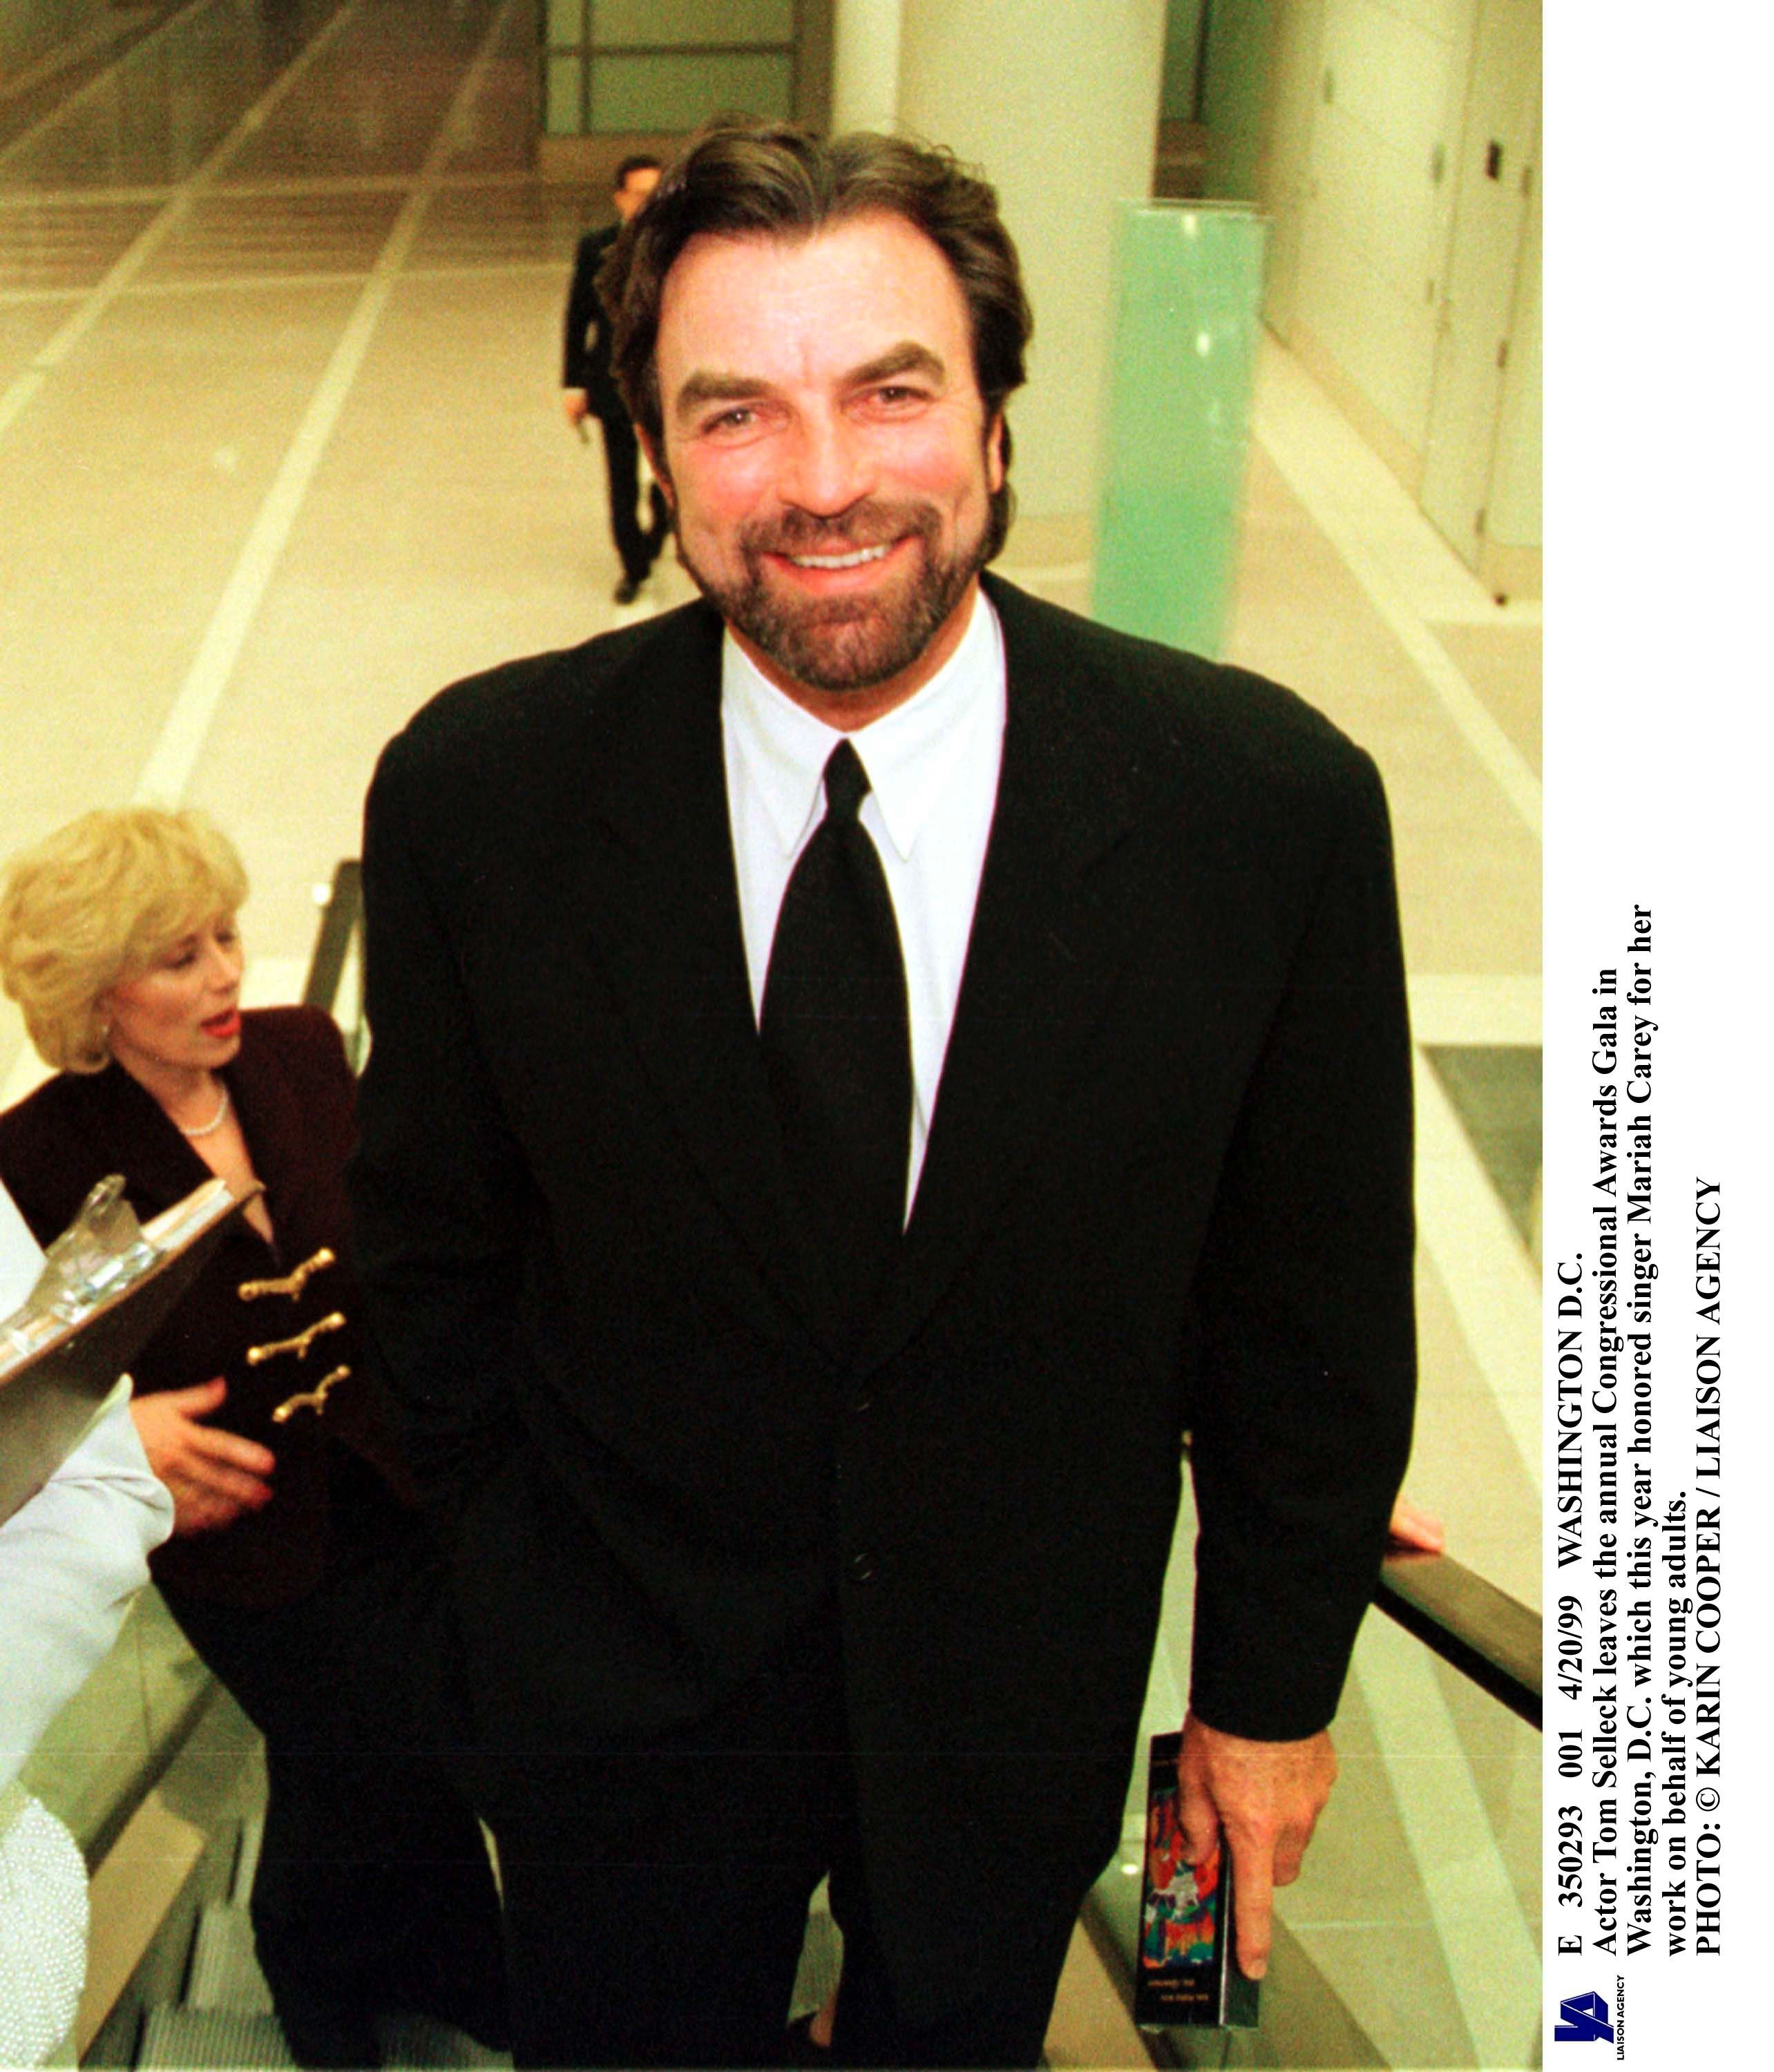 Tom Selleck during The Annual Congressional Awards Gala In Washington, D.C. | Source: Getty Images